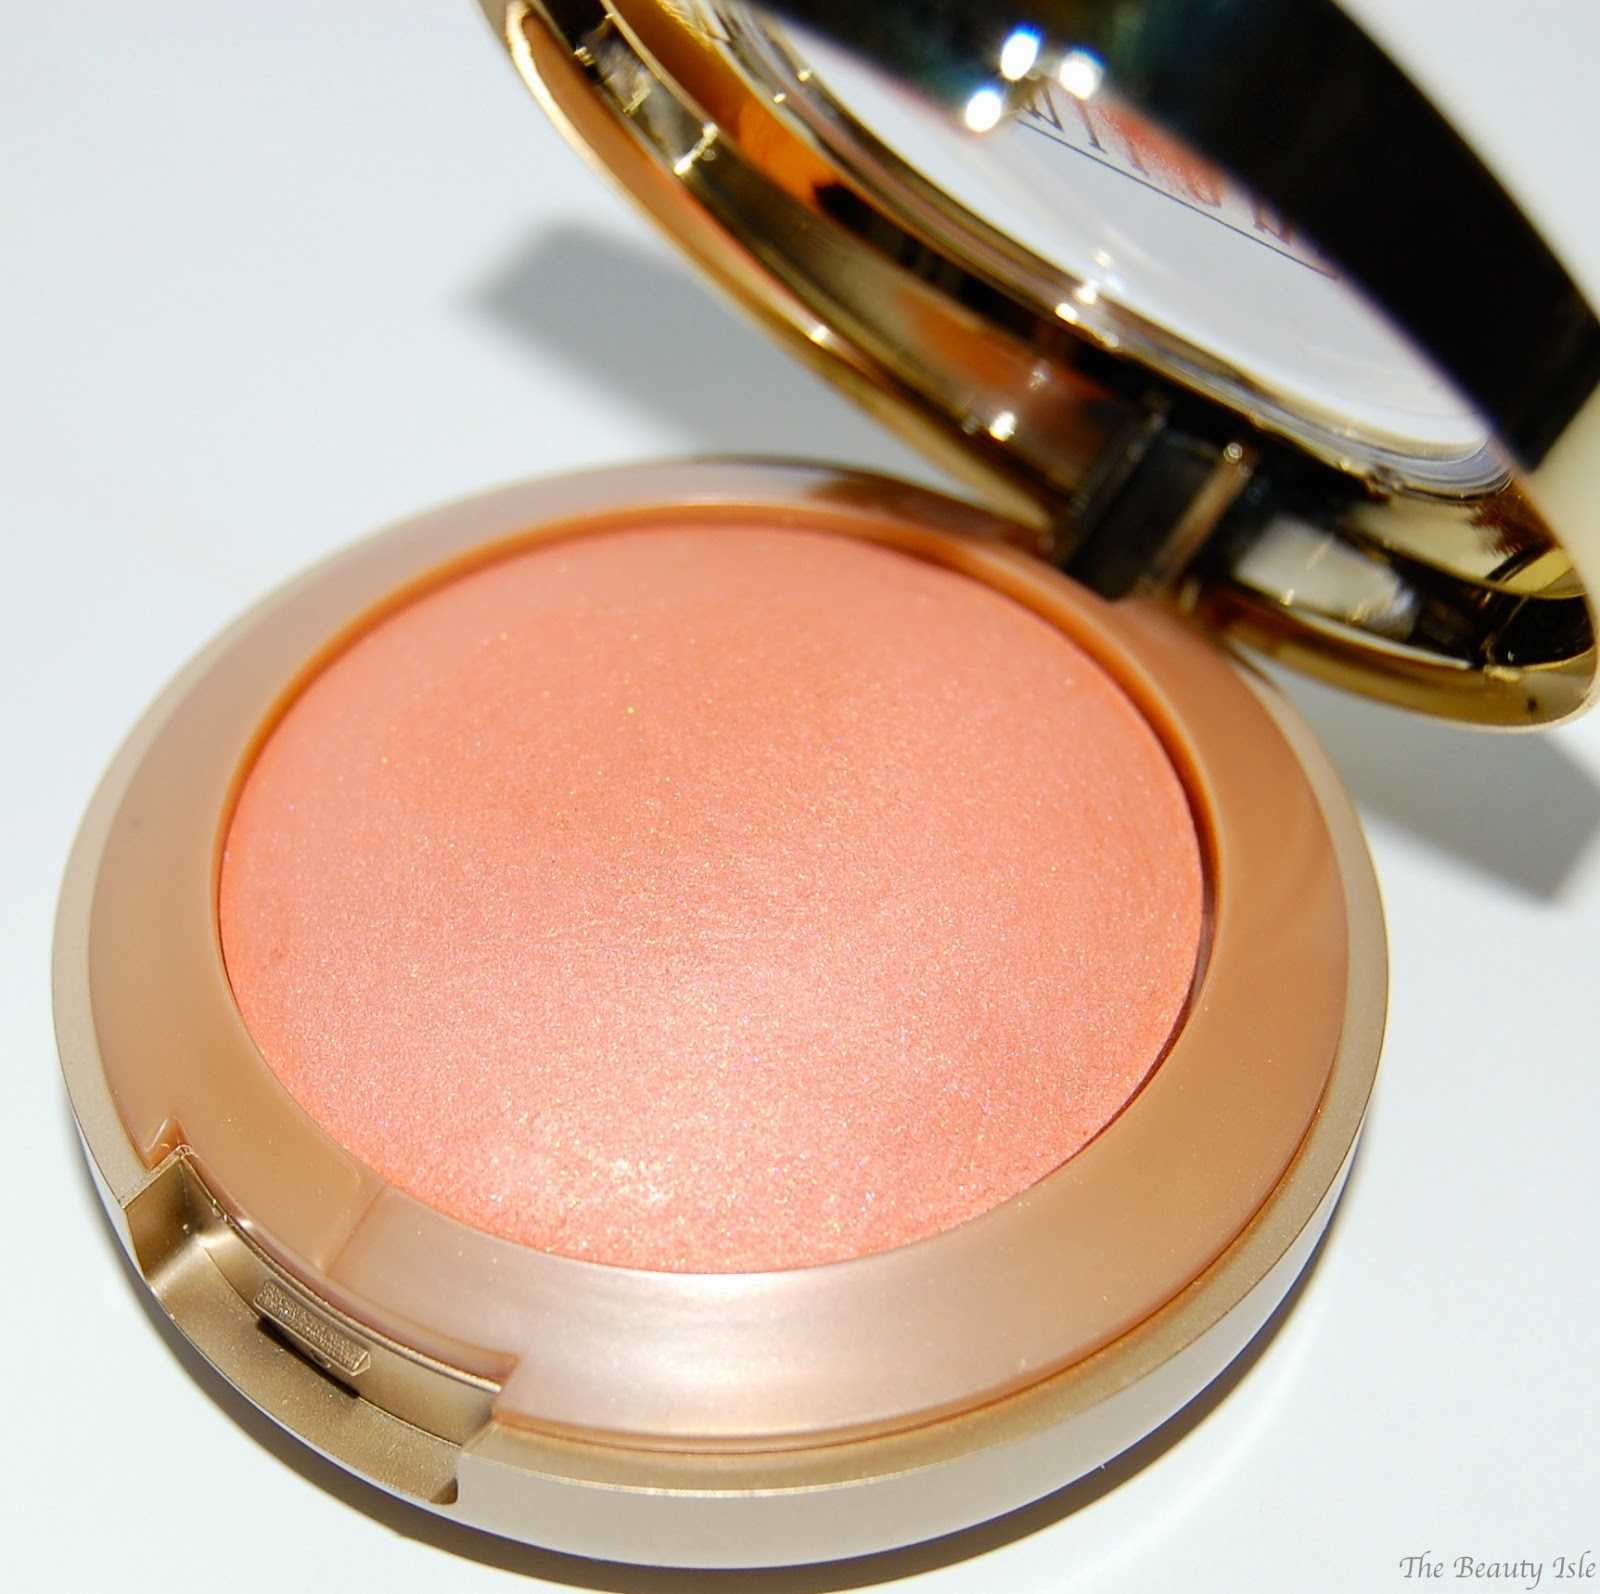 How to Apply Baked Blush